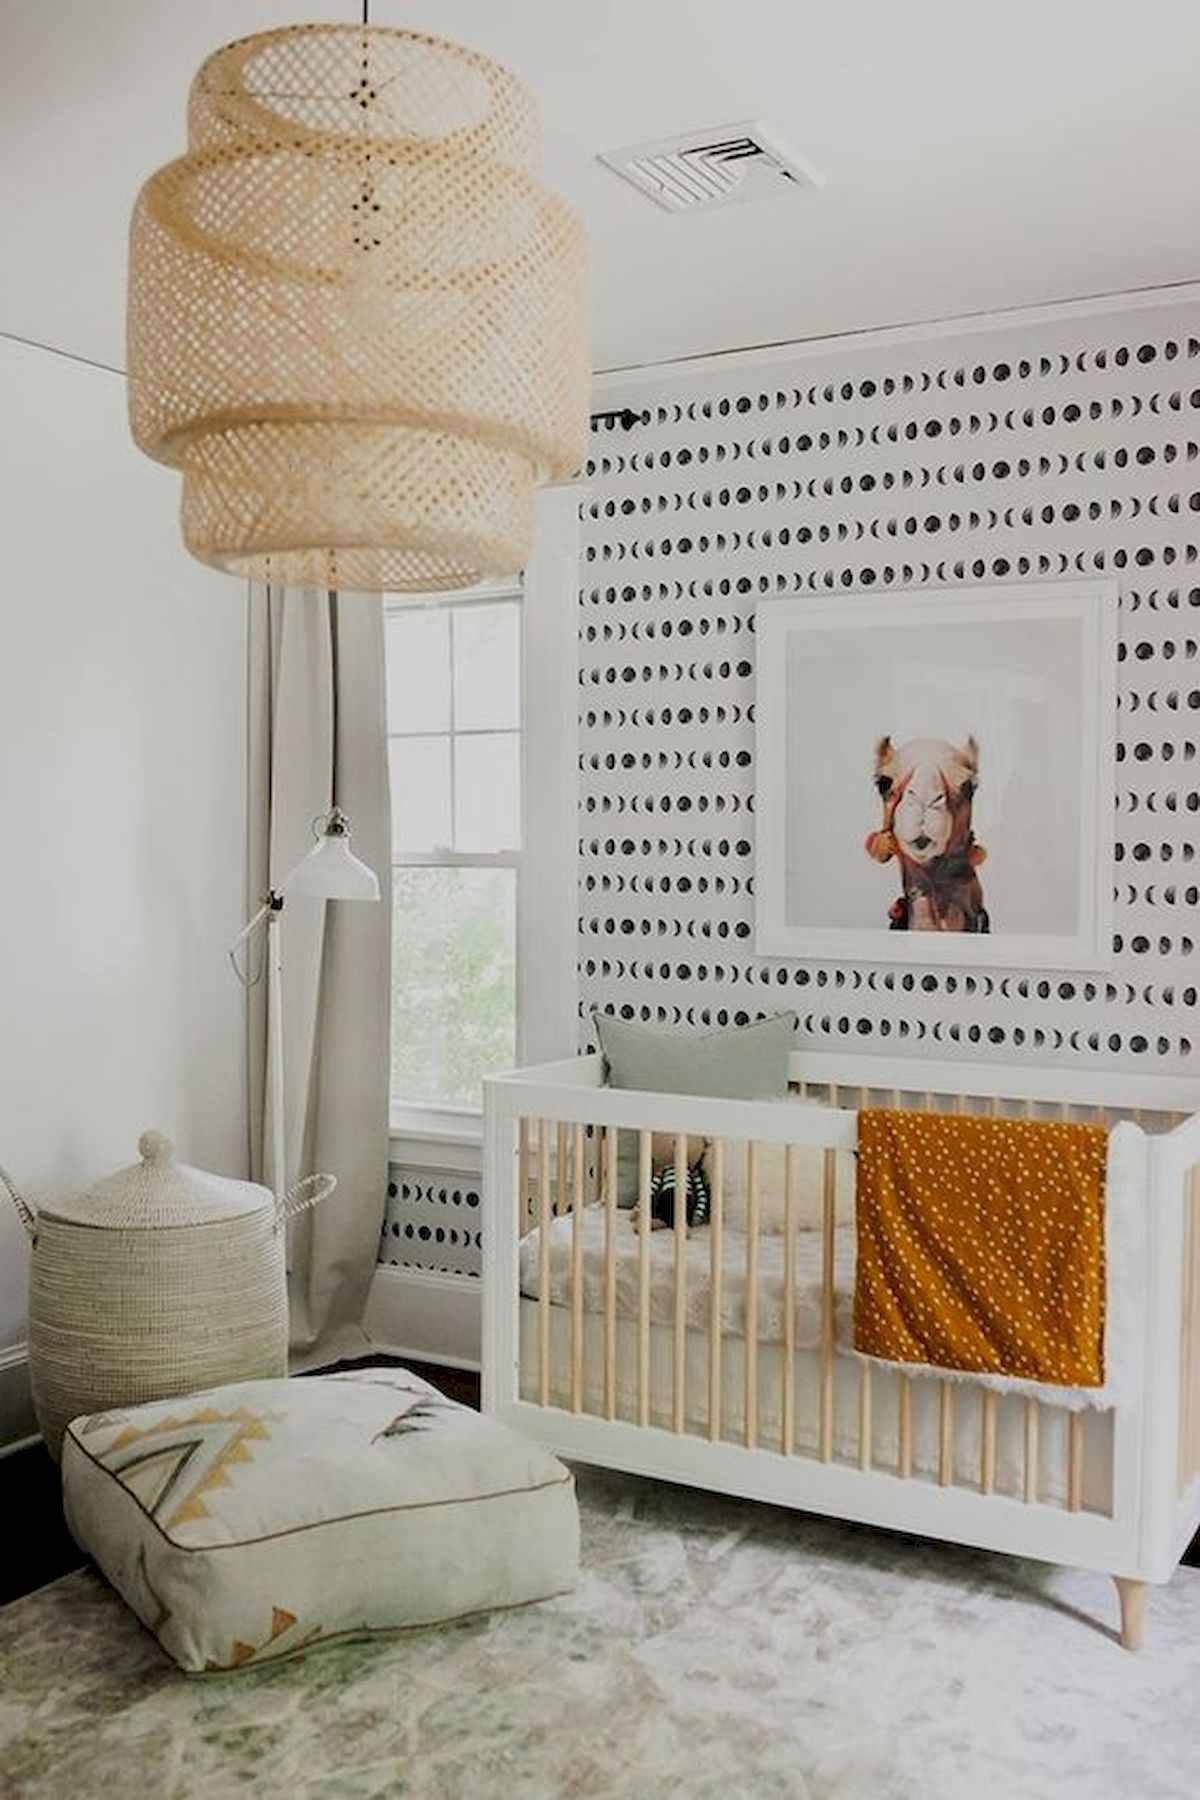 23 Awesome Small Nursery Design Ideas 21